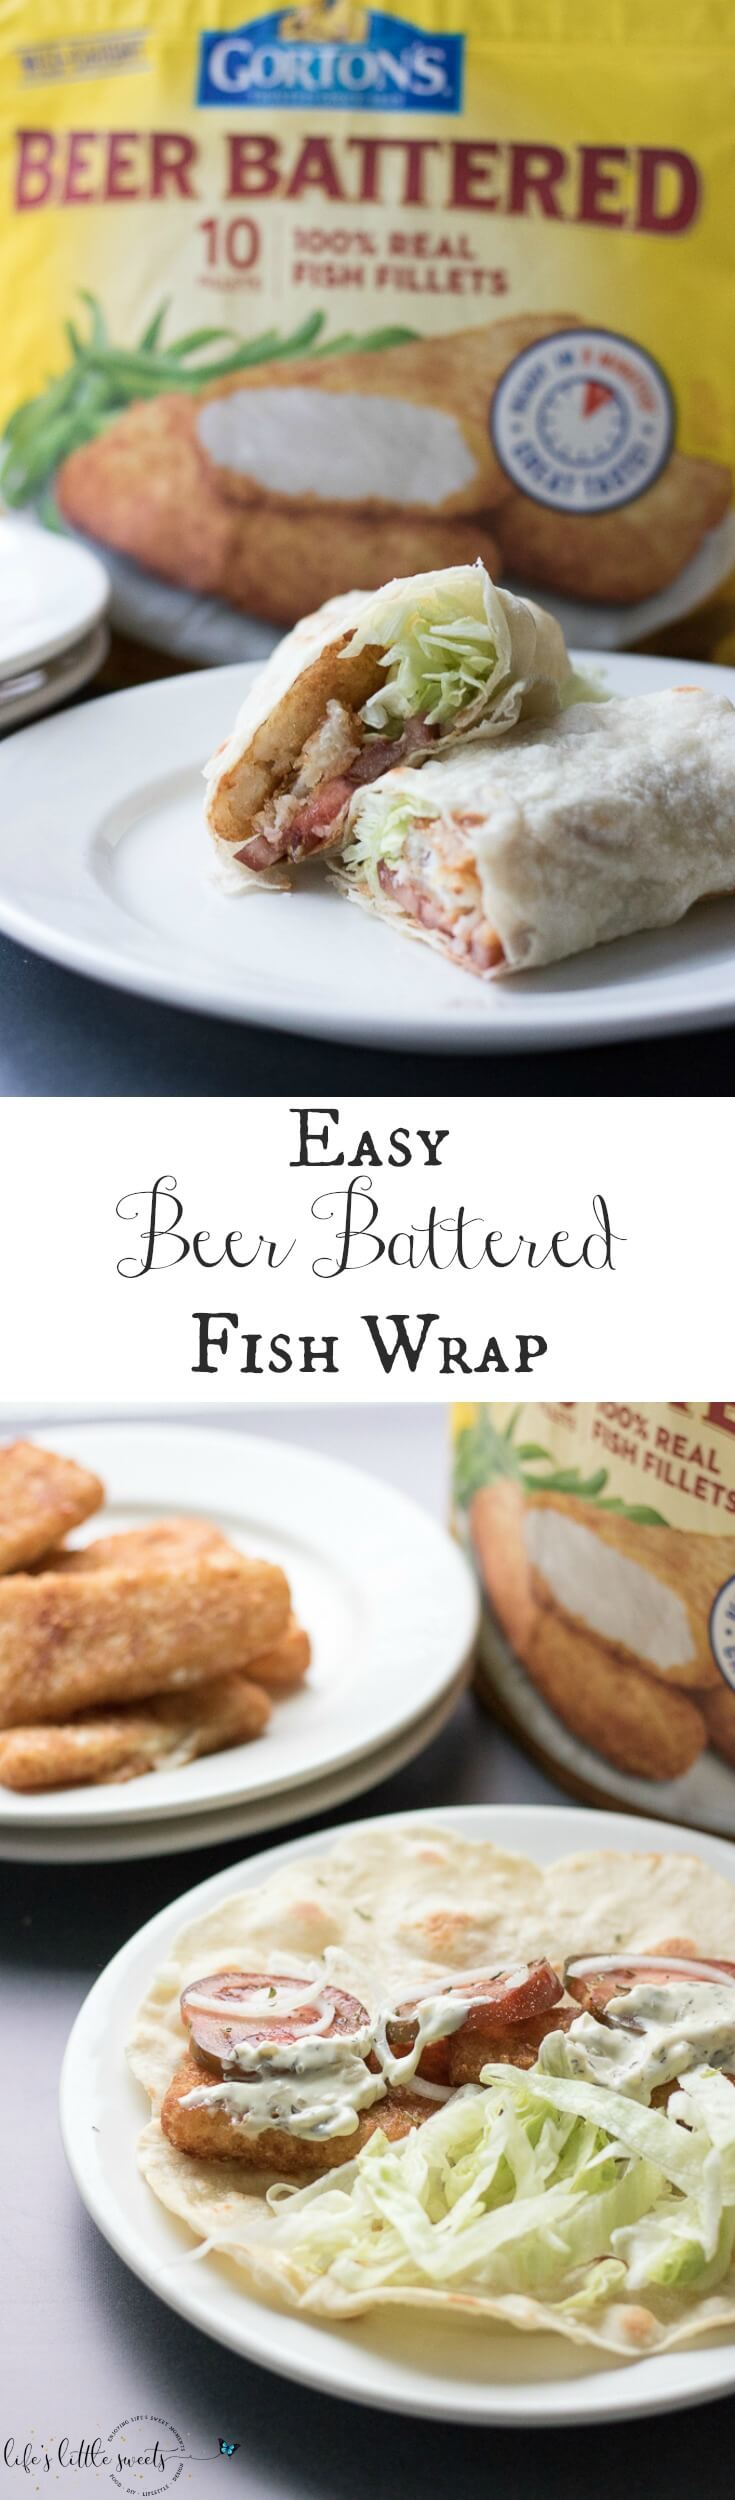 This Easy Beer Battered Fish Wrap has fresh ripe tomatoes, sliced onion, shaved Iceberg lettuce and Gorton's Beer Battered Fish Fillets - all wrapped up in a tortilla wrap. #GortonsMealTime #TrustGortons #CollectiveBias #ad @gortonsseafood